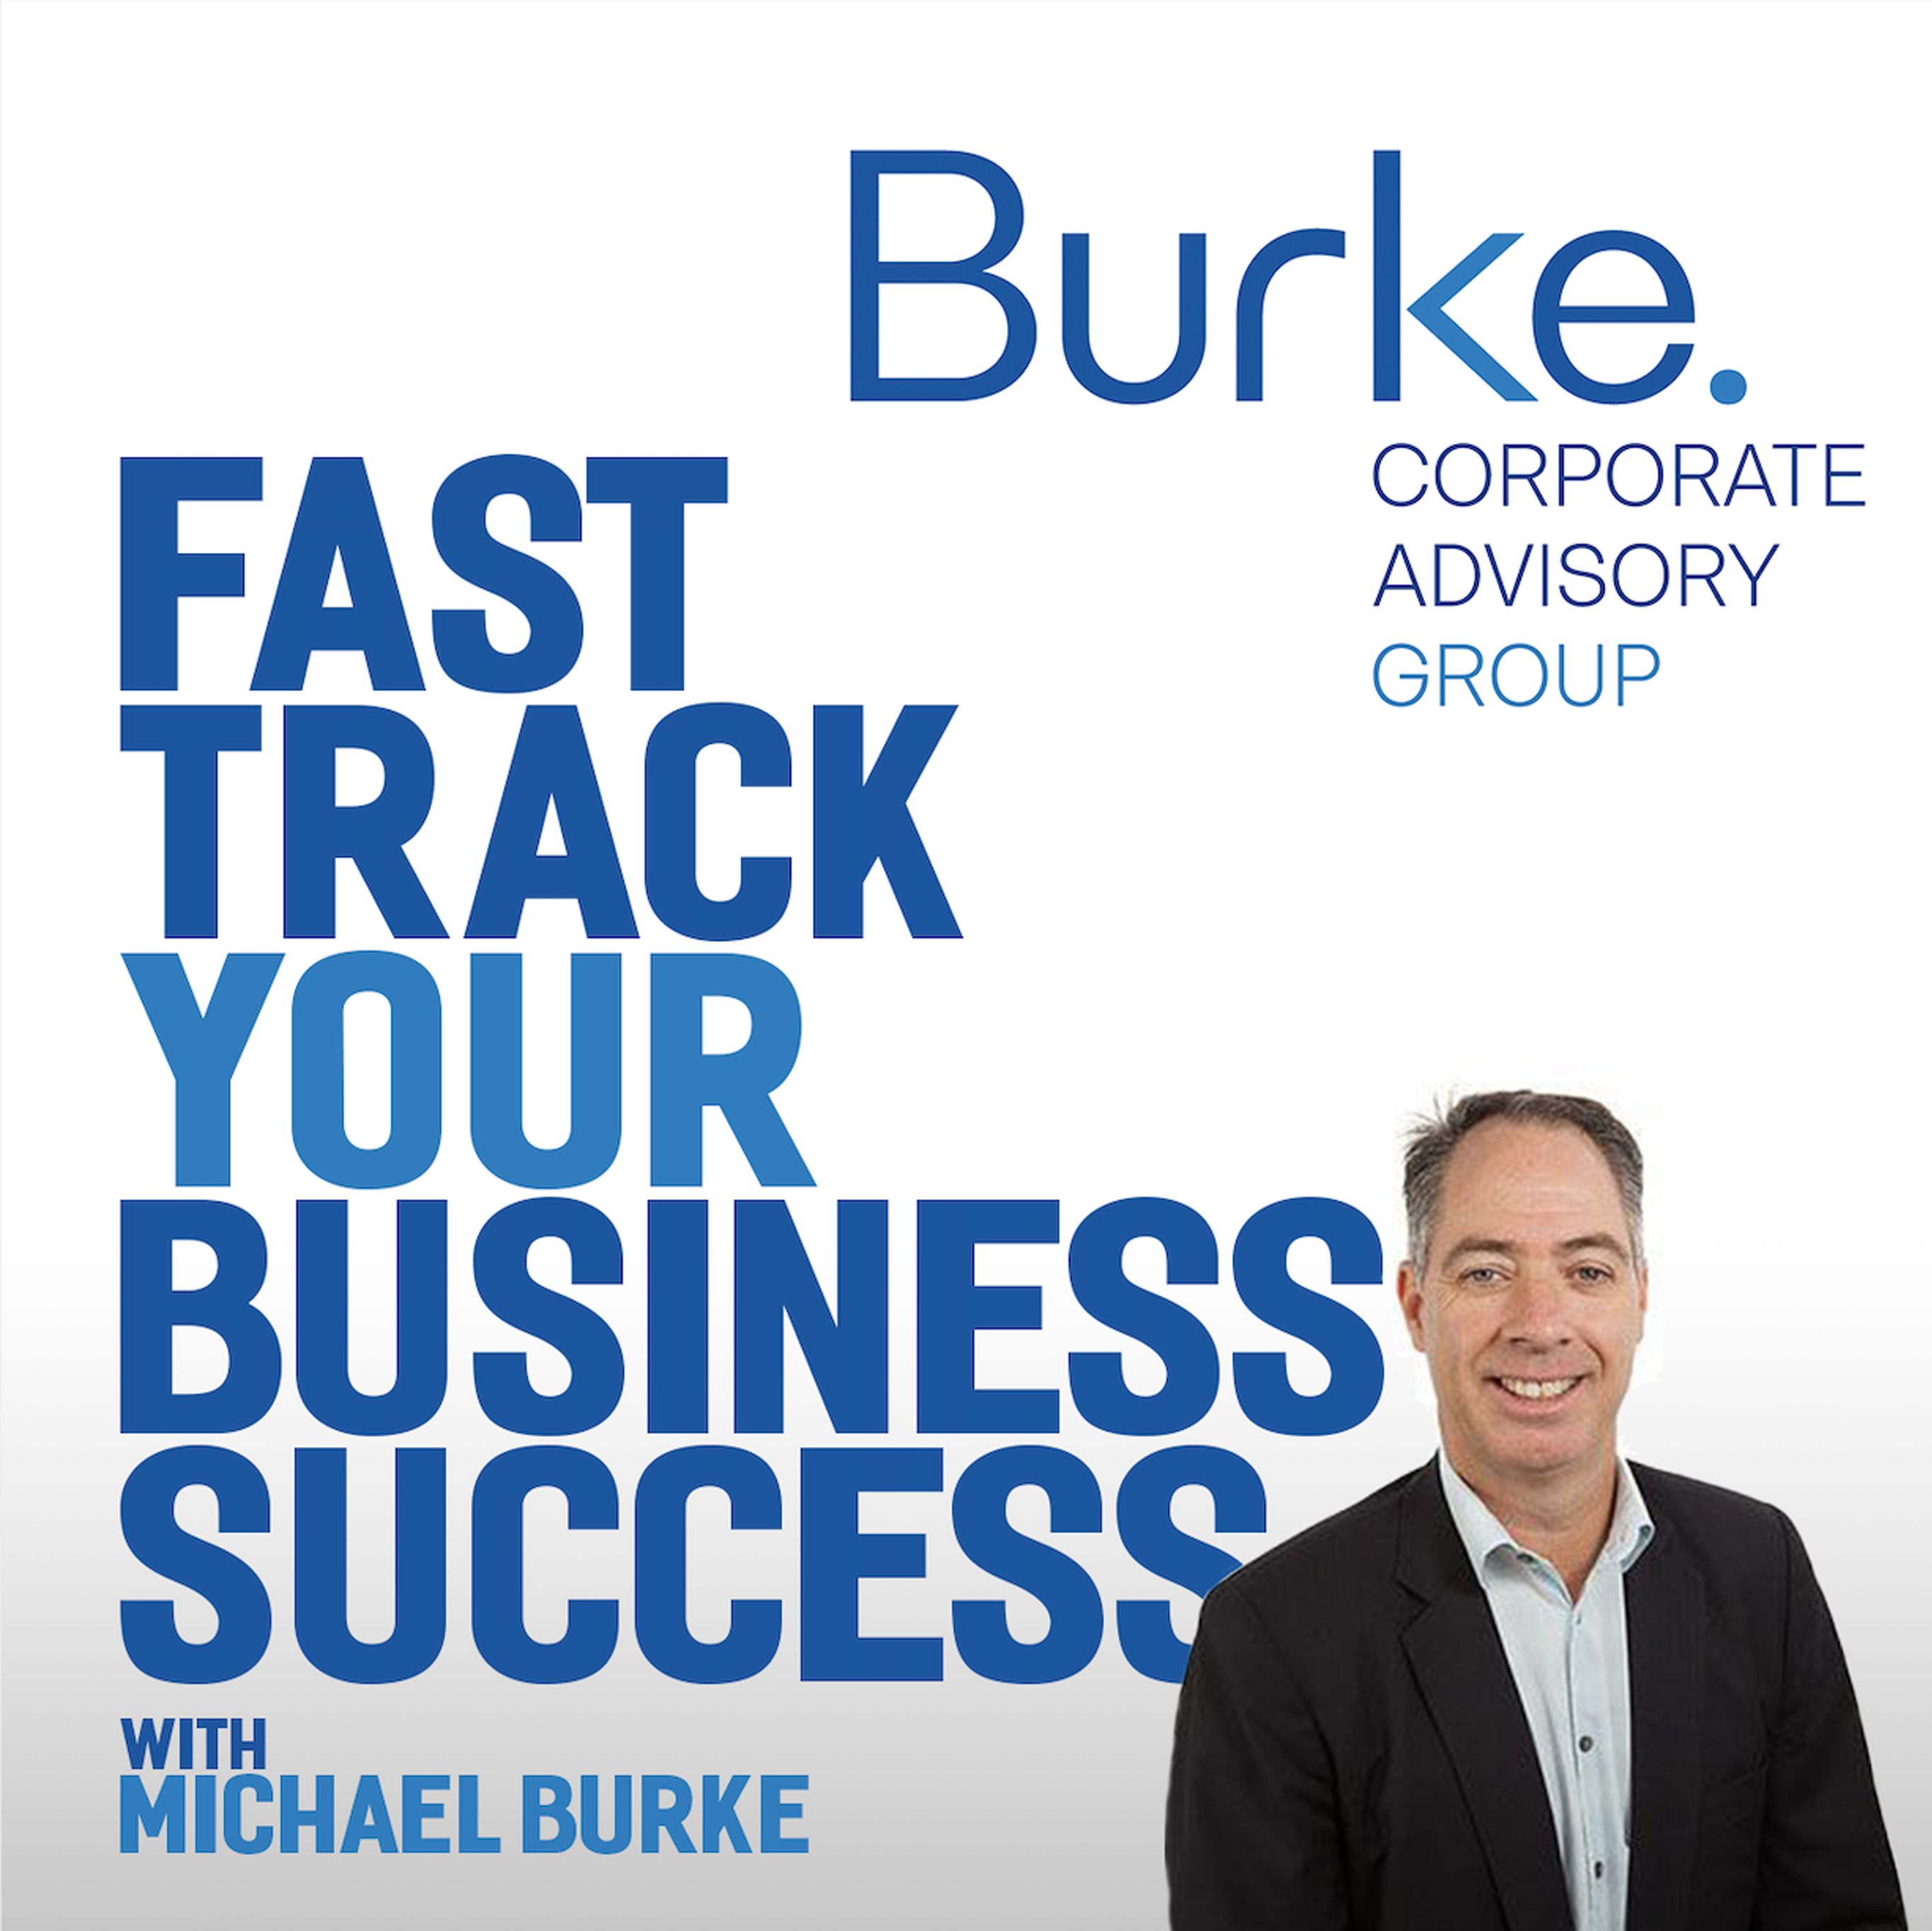 Fast Track Your Business Success with Michael Burke